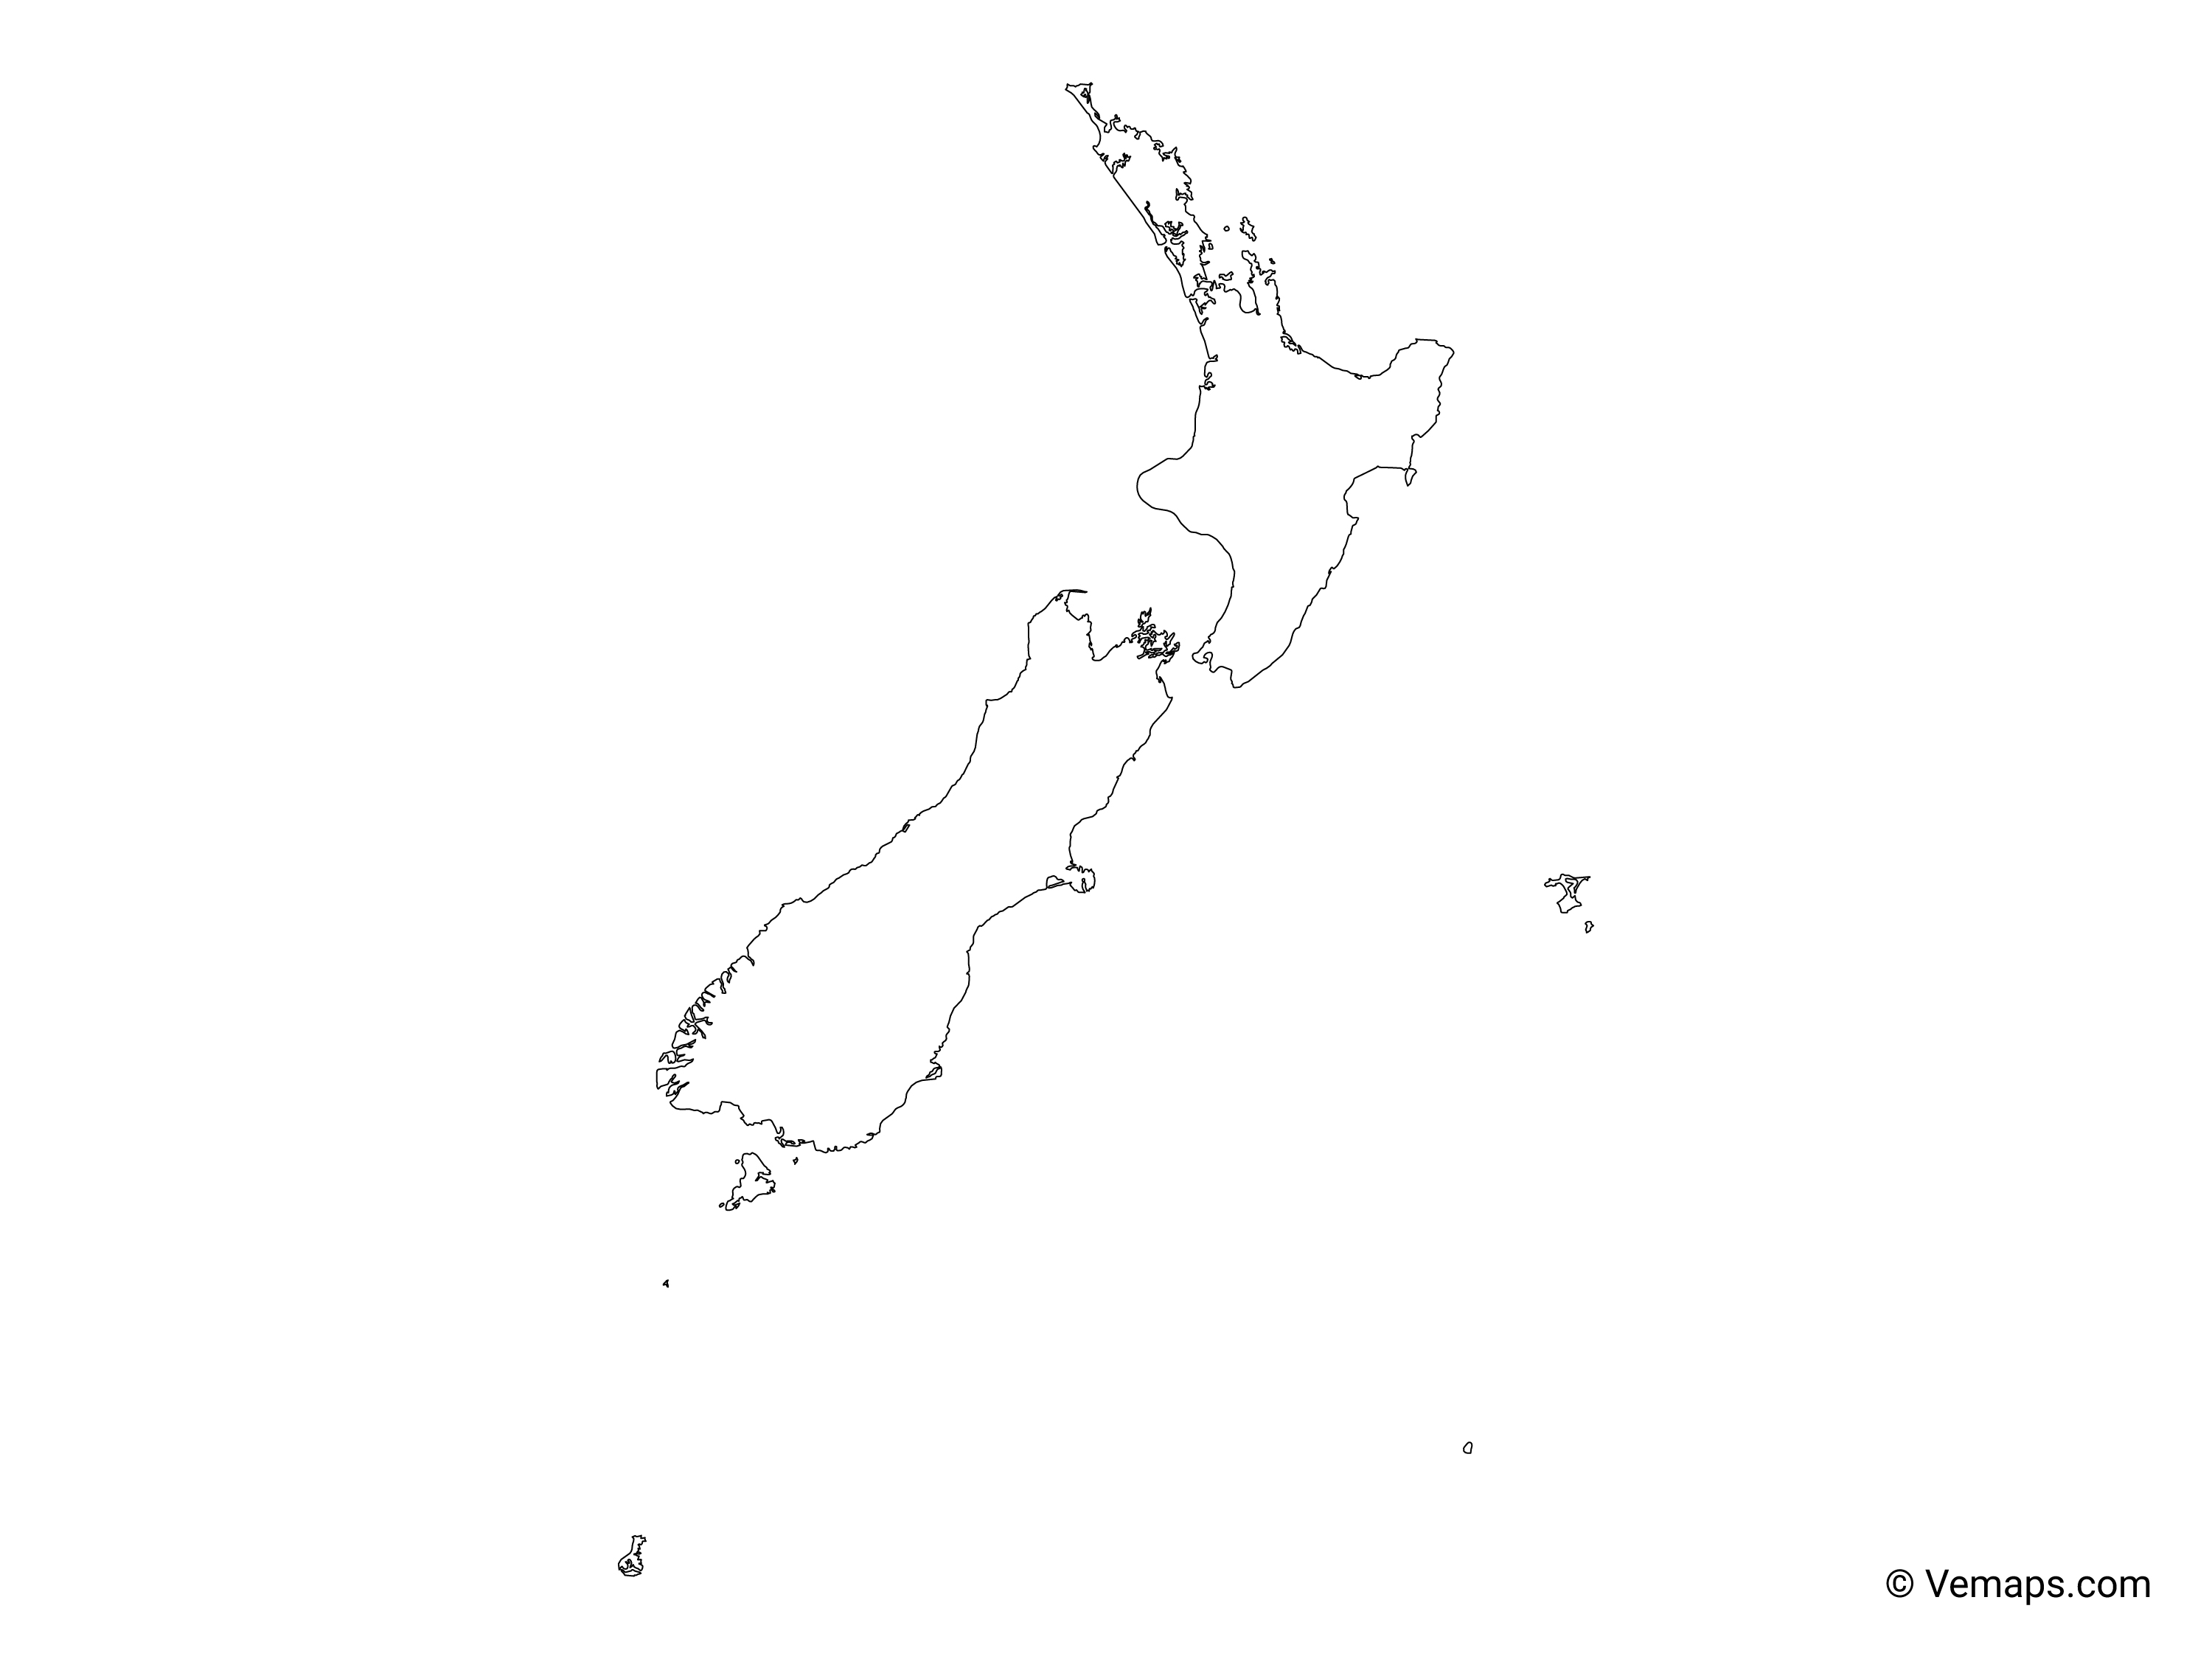 New Zealand Map Outline Outline Map of New Zealand | Free Vector Maps